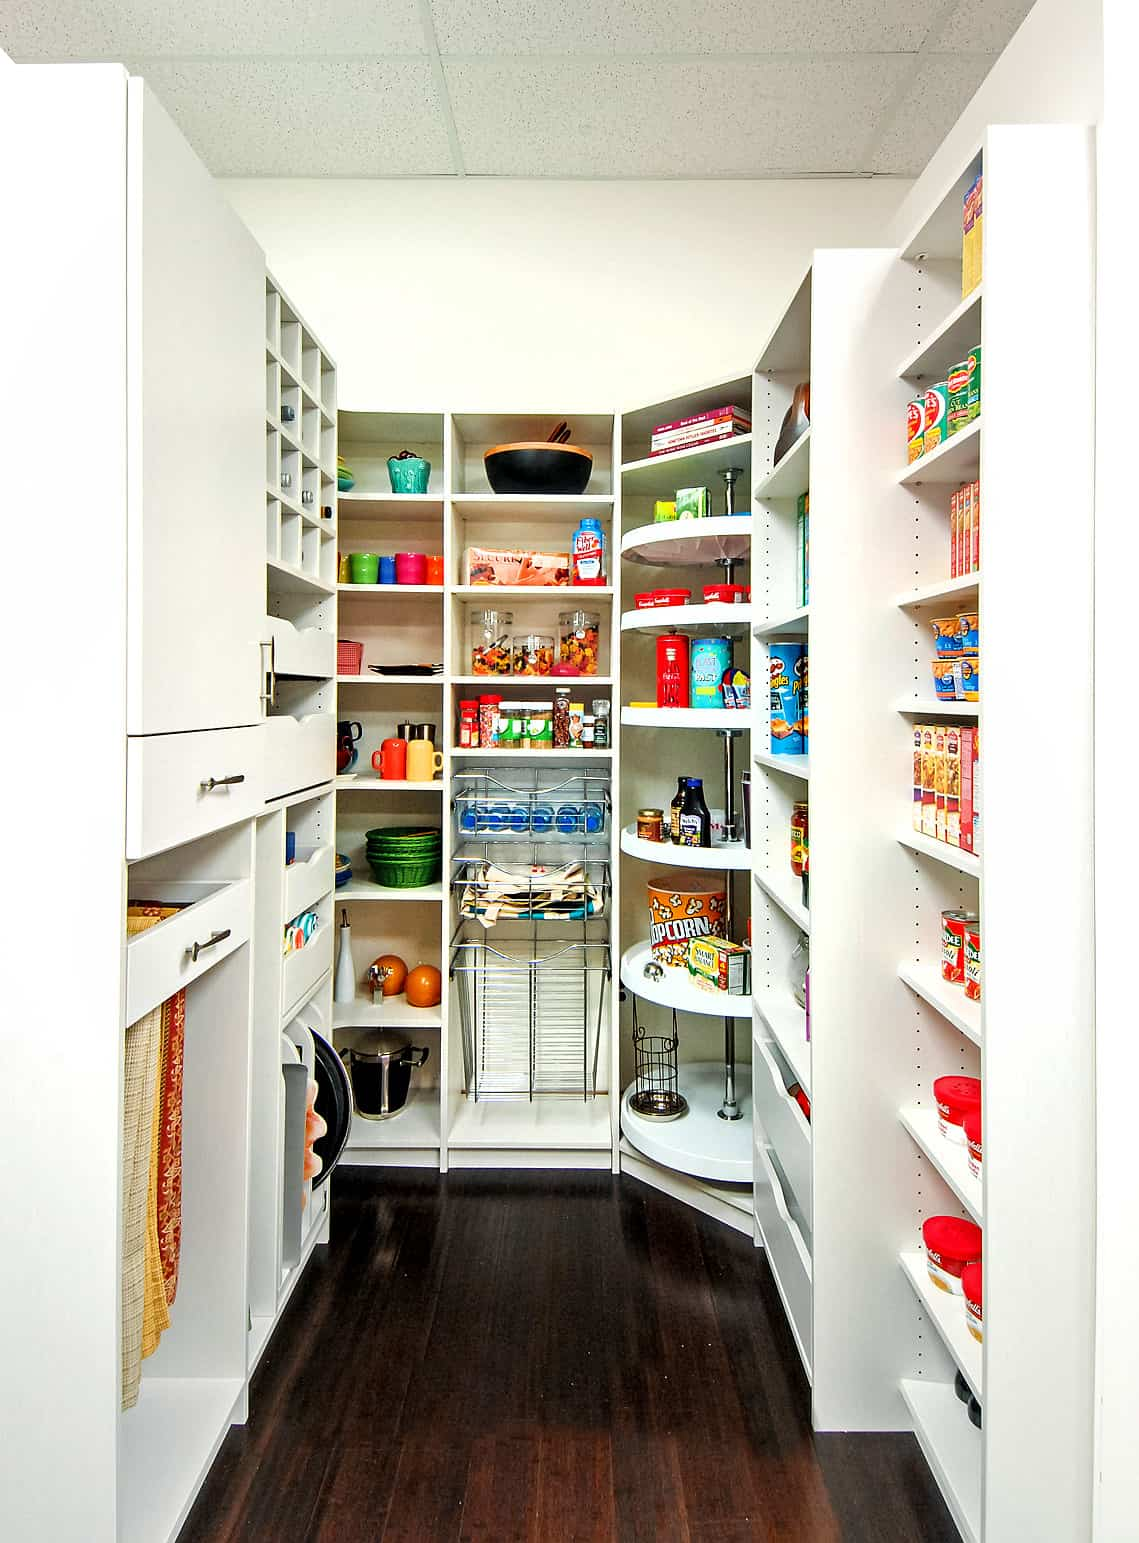 Get rid of kitchen clutter and never run out of dry goods again with a large custom built kitchen pantry like this one designed and built by Closet Works.